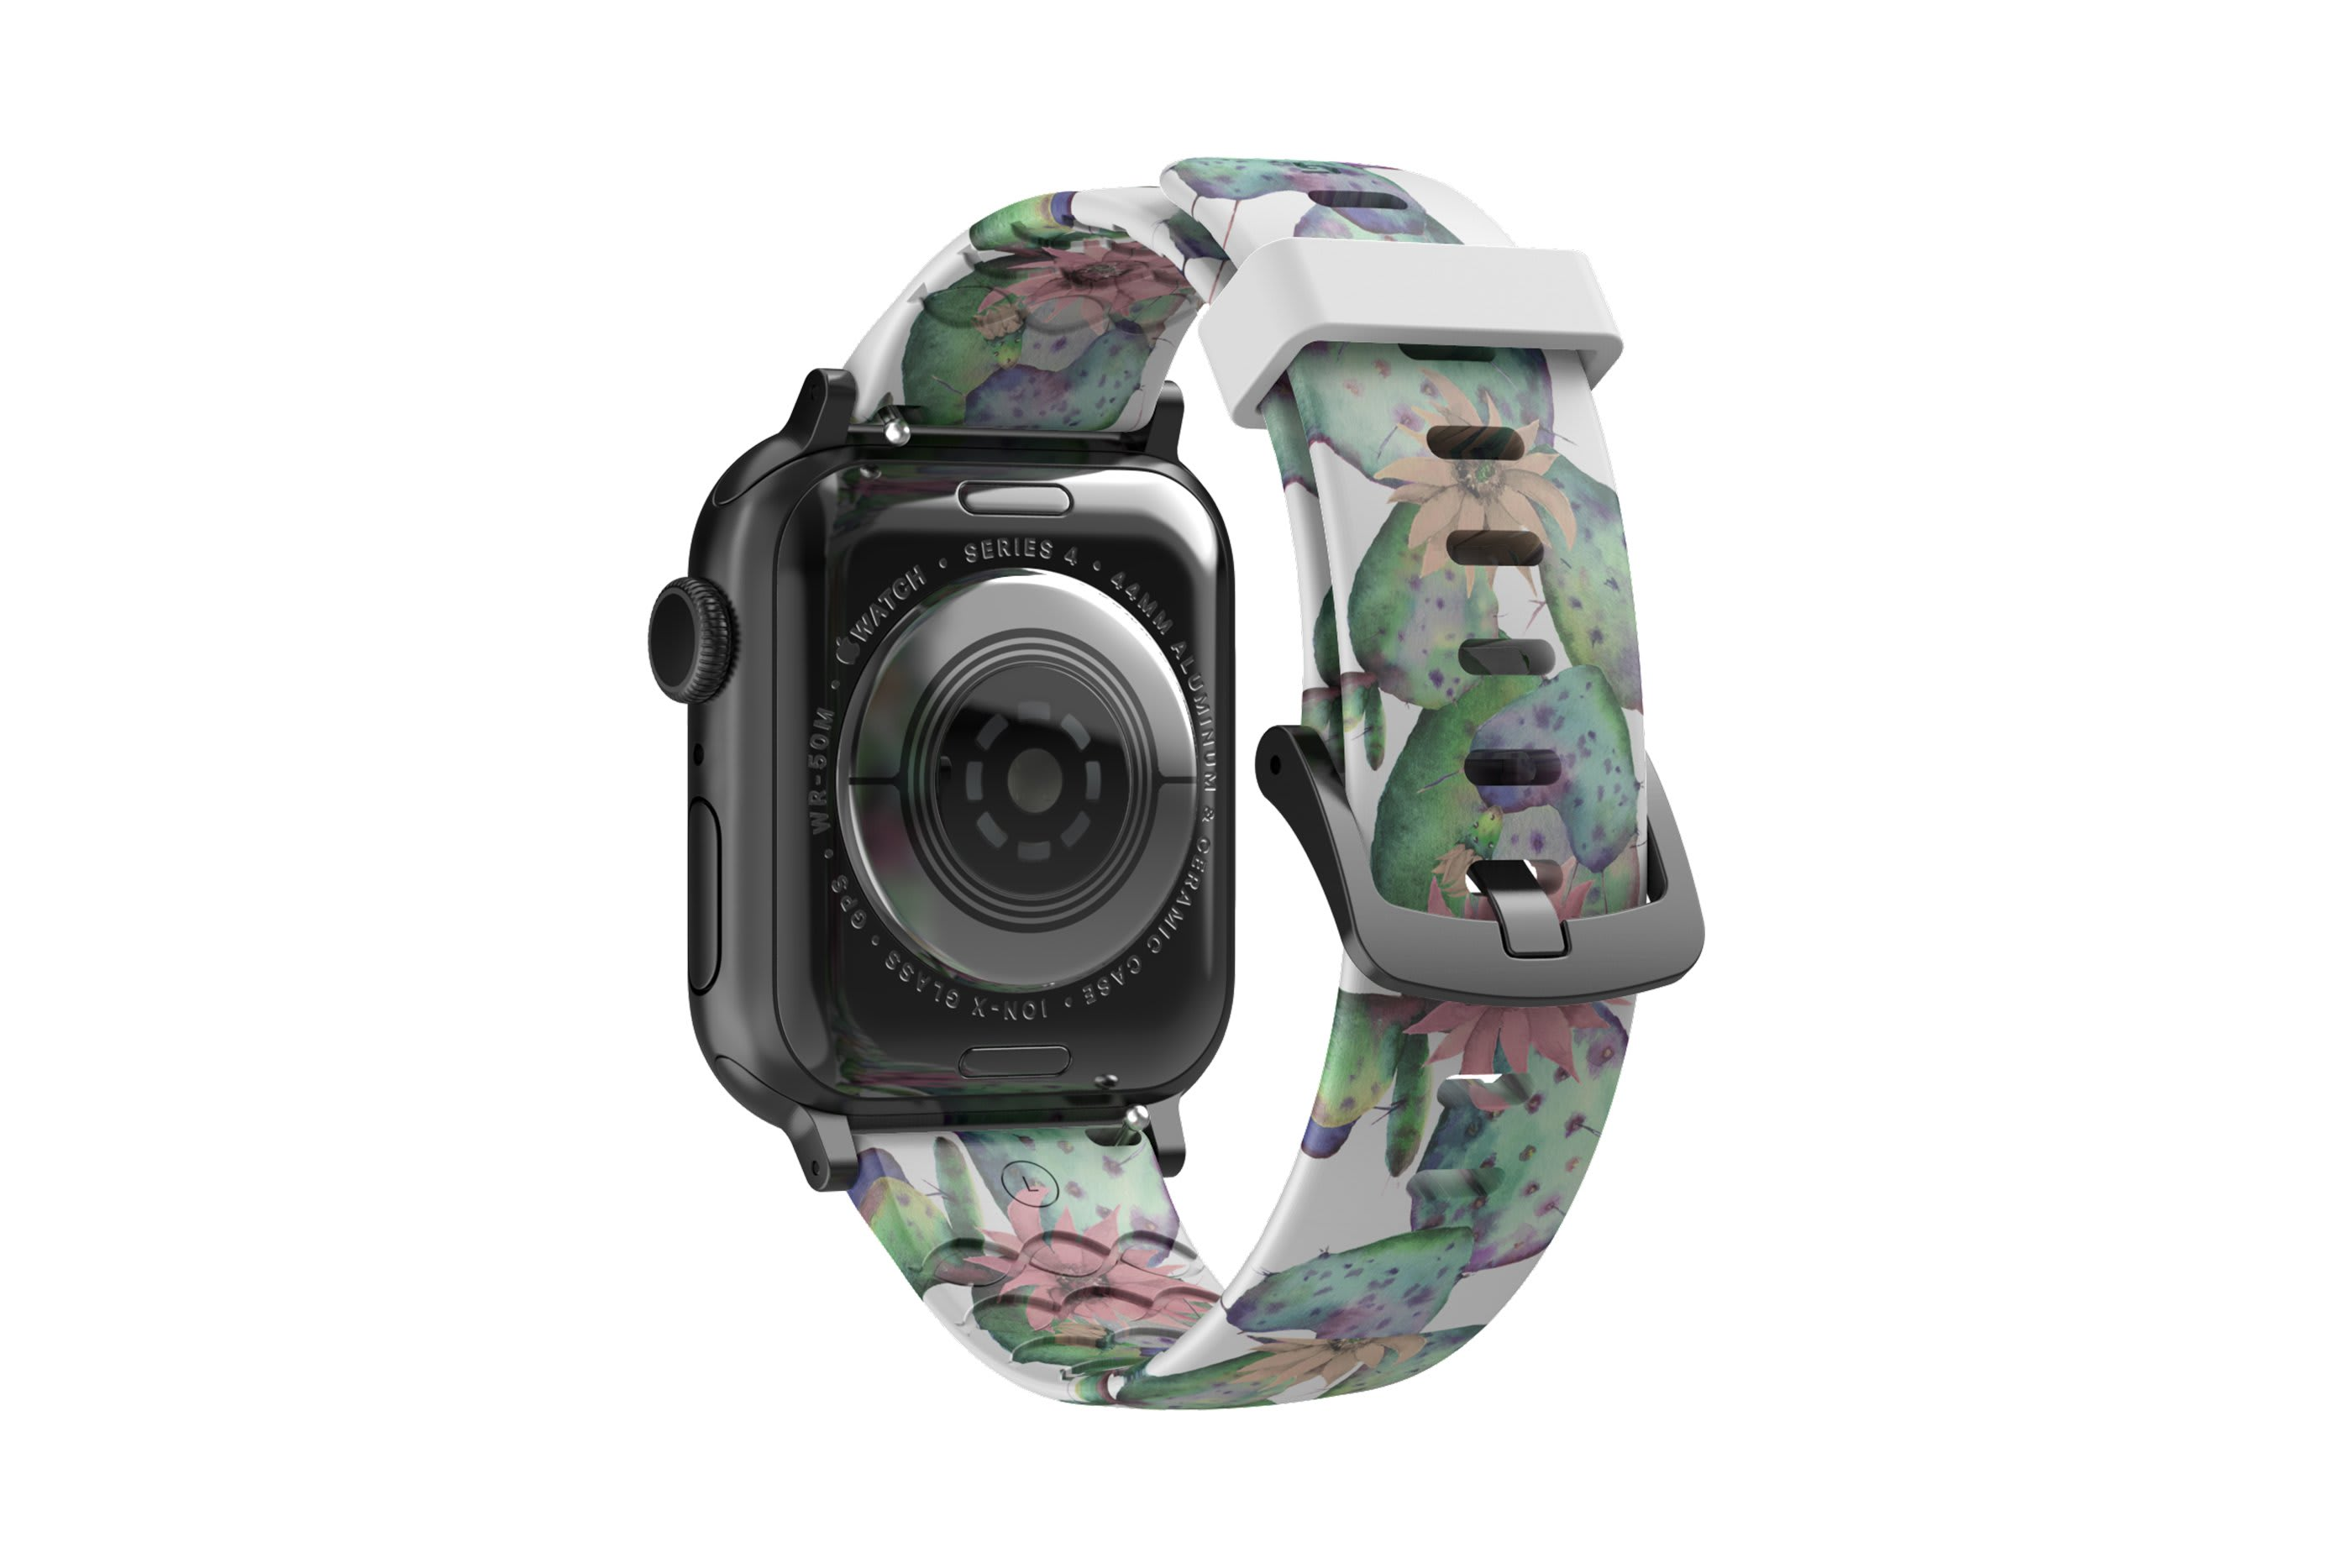 Cactus Bloom Apple Watch Band with gray hardware viewed from top down